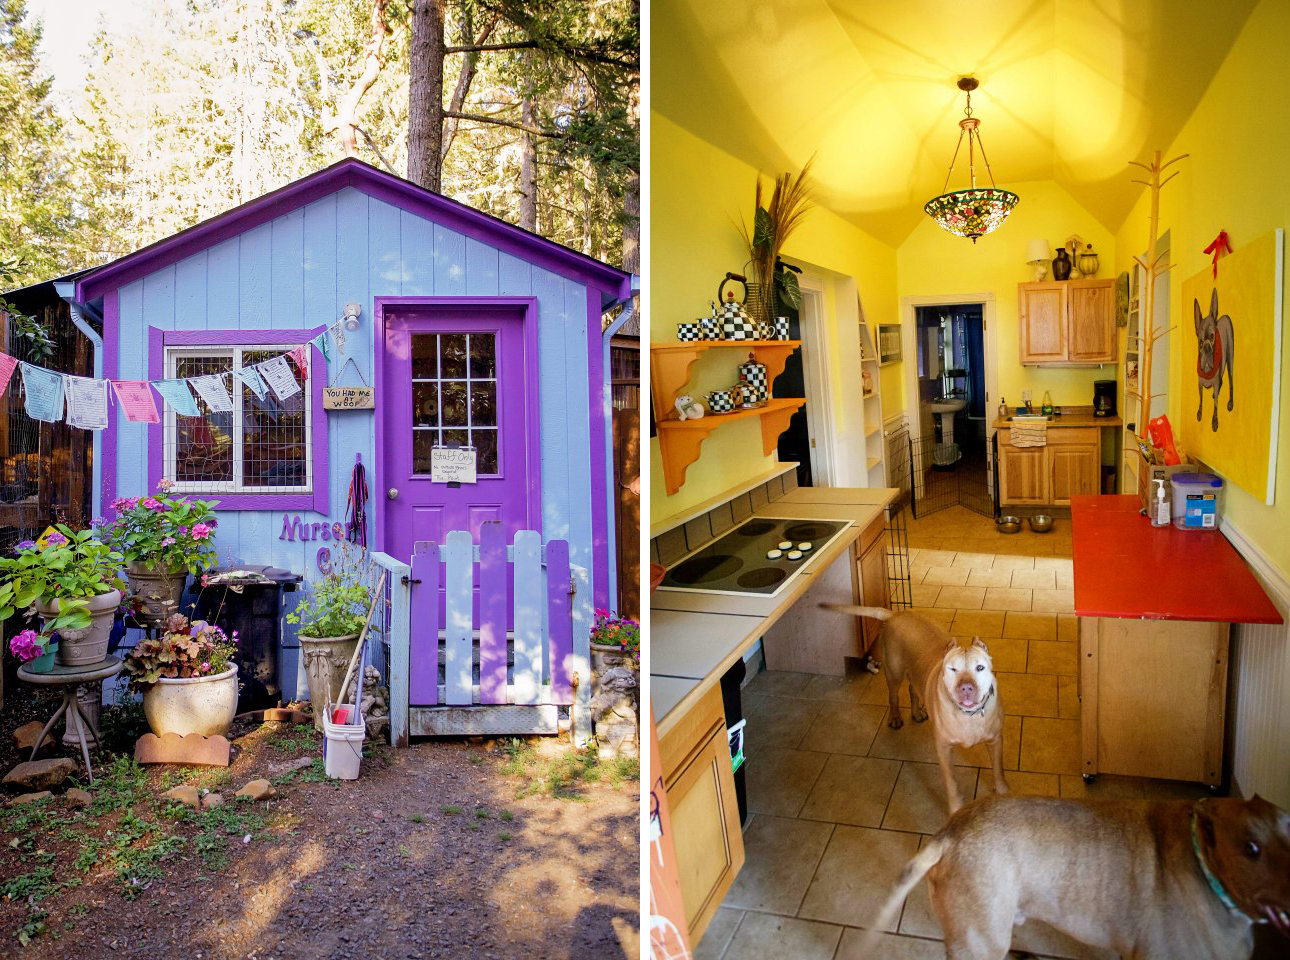 This Rescue Built Tiny Cottages For Pit Bulls While They